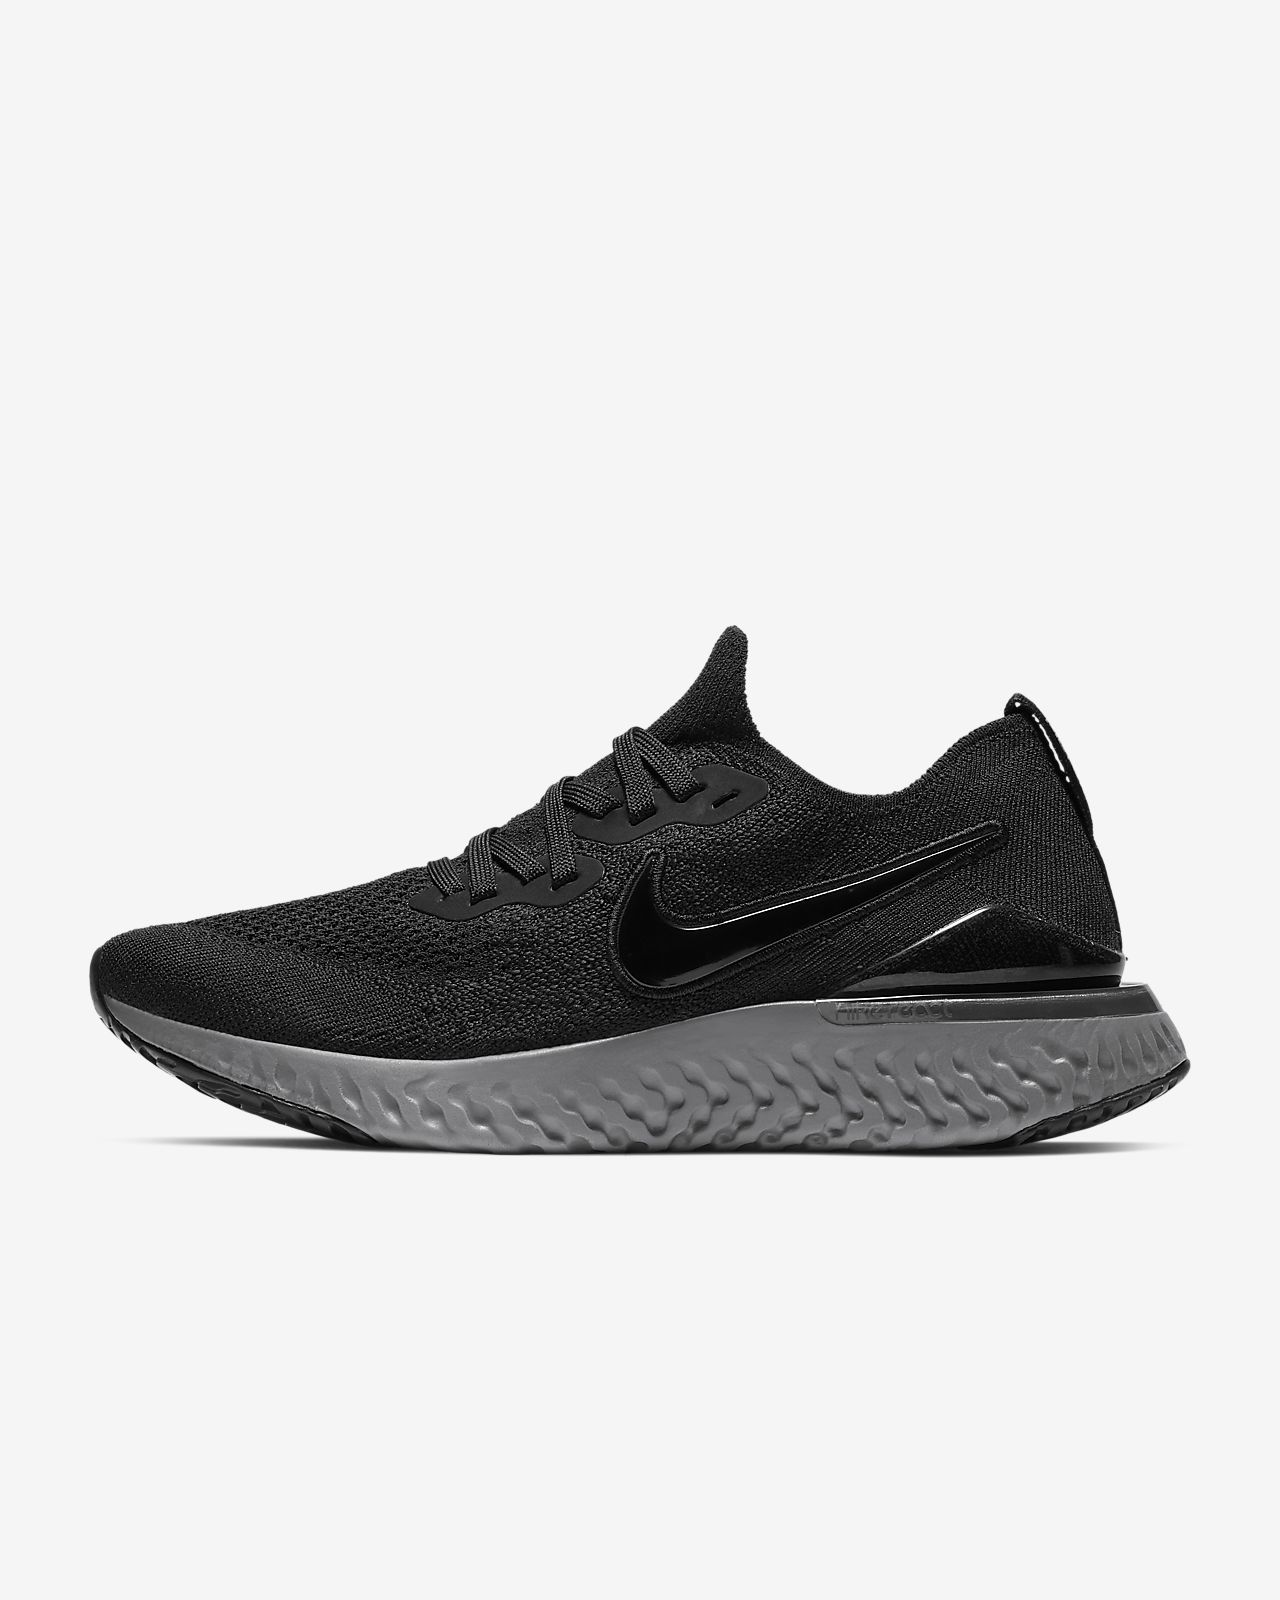 official photos e82db e1ab0 Nike Epic React Flyknit 2 Women's Running Shoe